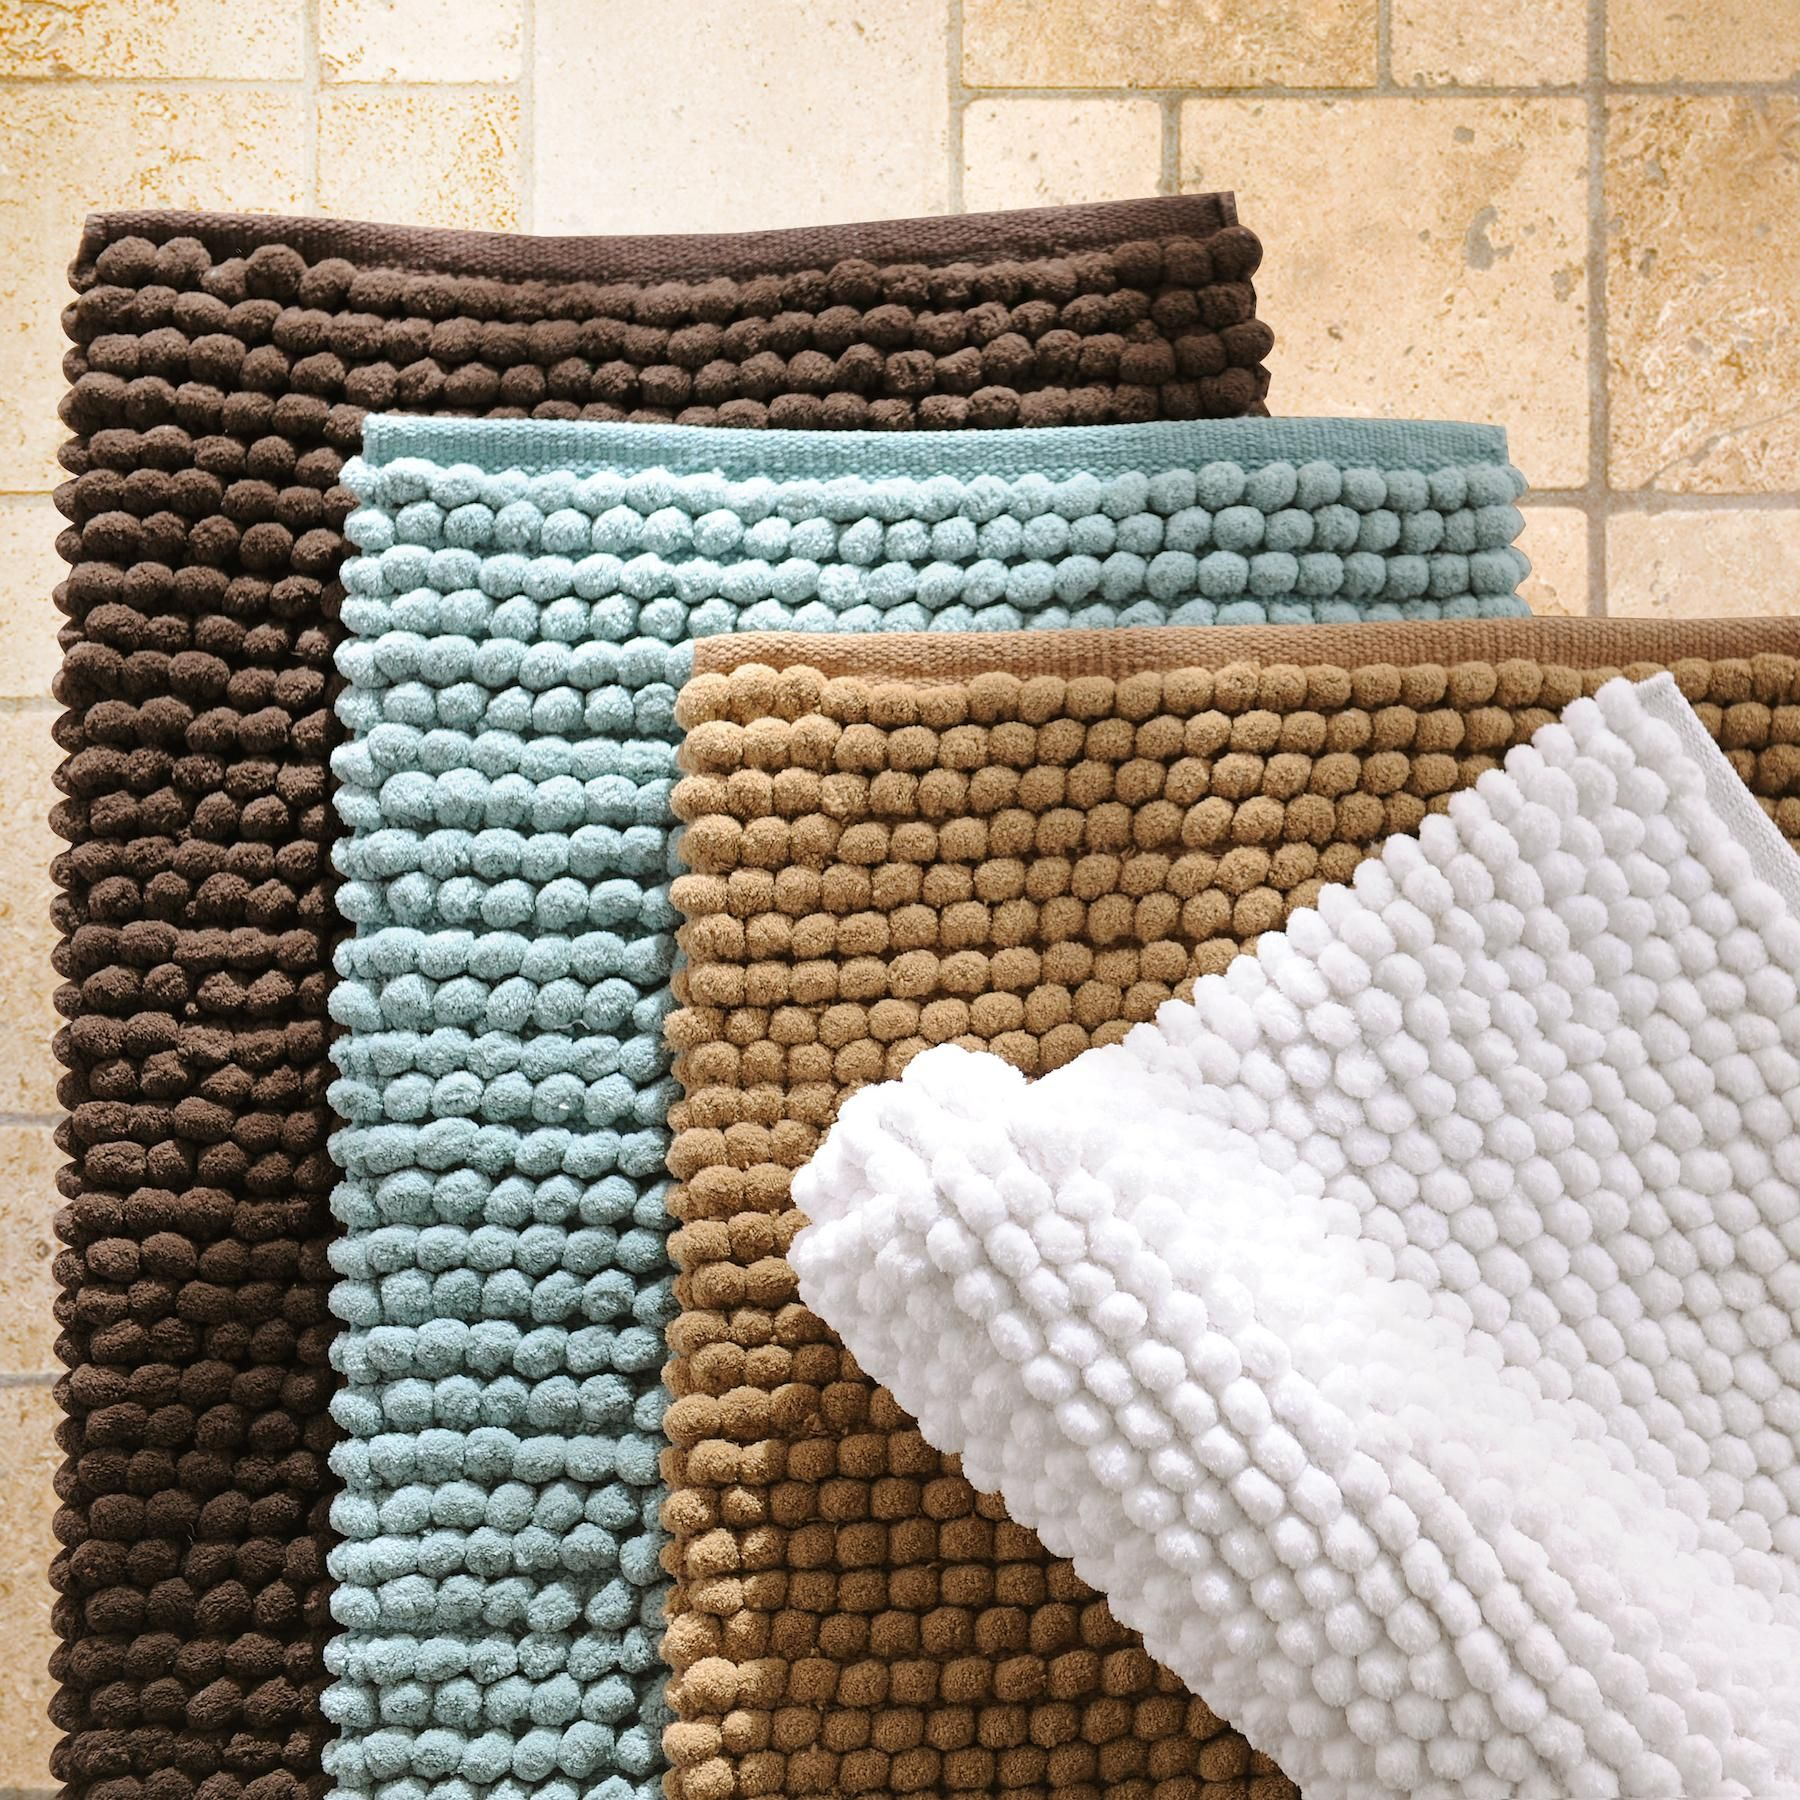 Step into comfort with our bathroom rugs! We have the